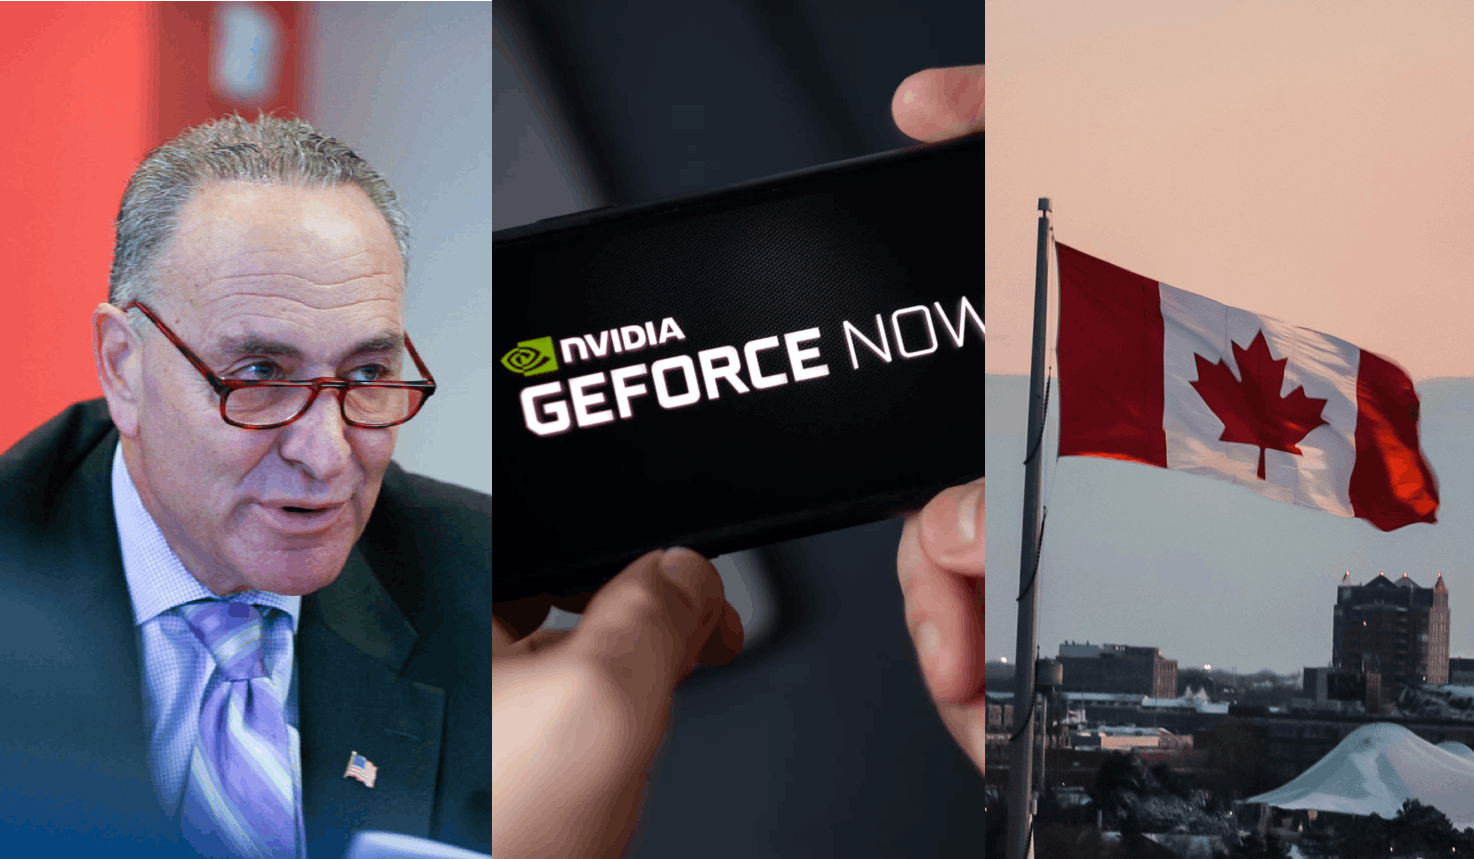 US Senator Chuck Schumer outlines ambitious electric car proposal—Nvidia doubles GeForce Now subscription price—Canadian telco giants Rogers and Shaw announce merger